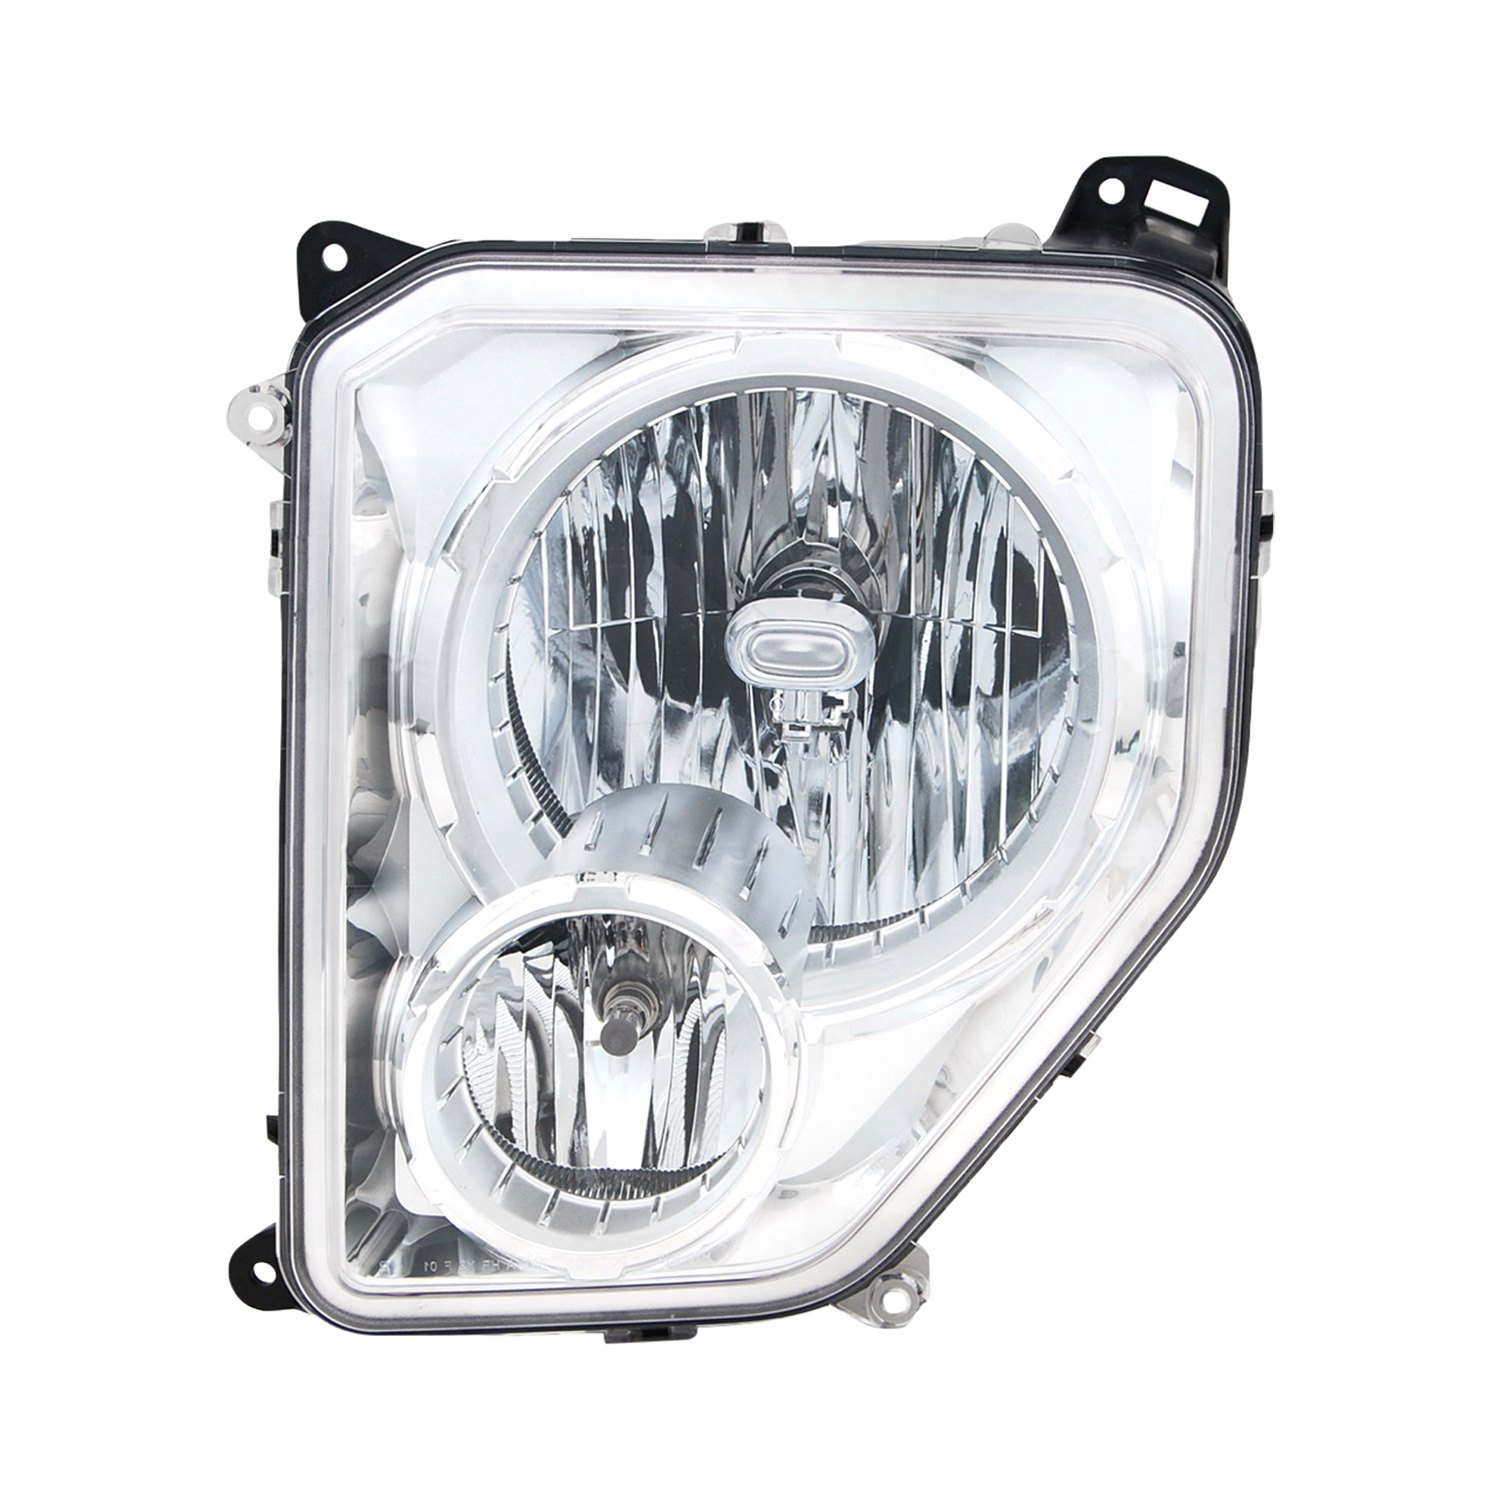 Jeep Liberty 2008-2009 Replacement Headlight